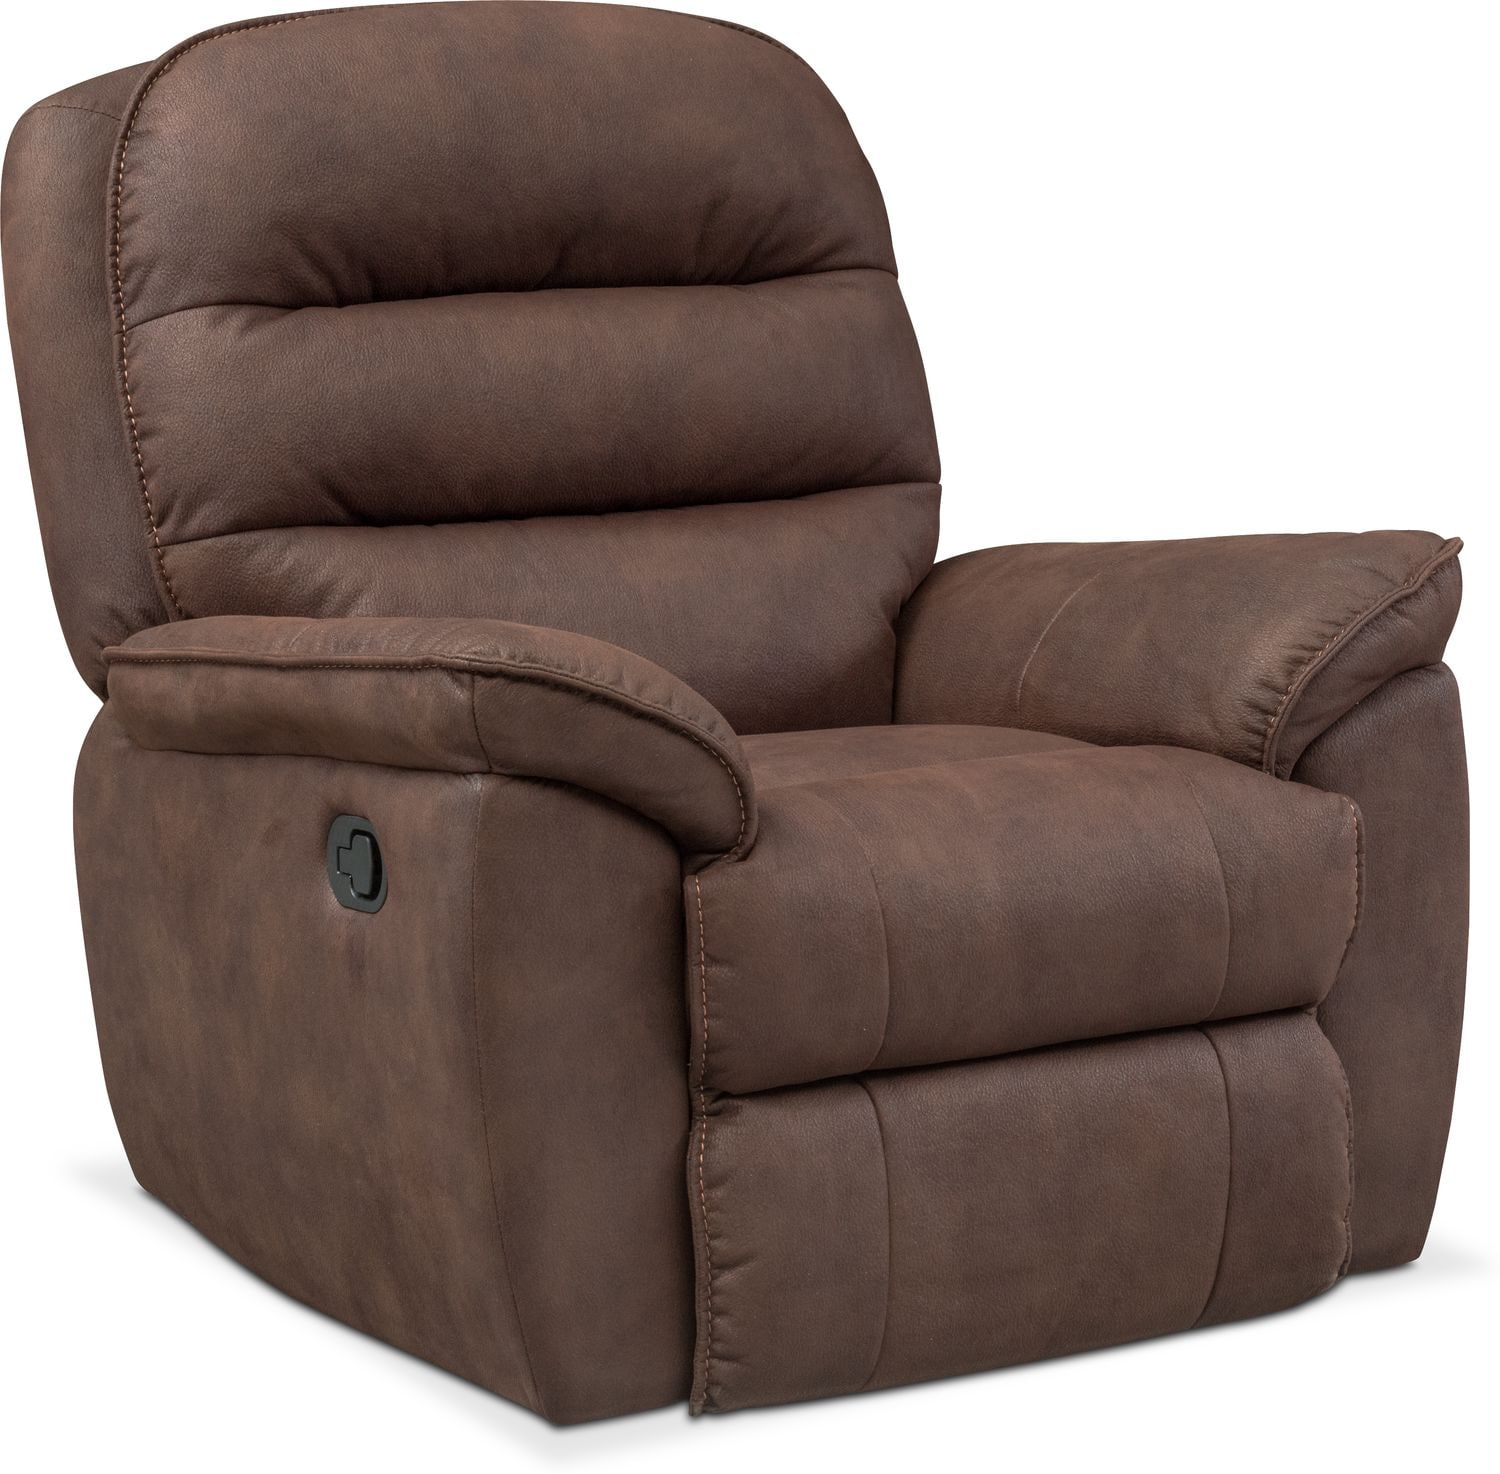 Living Room Furniture   Regis Glider Recliner   Brown